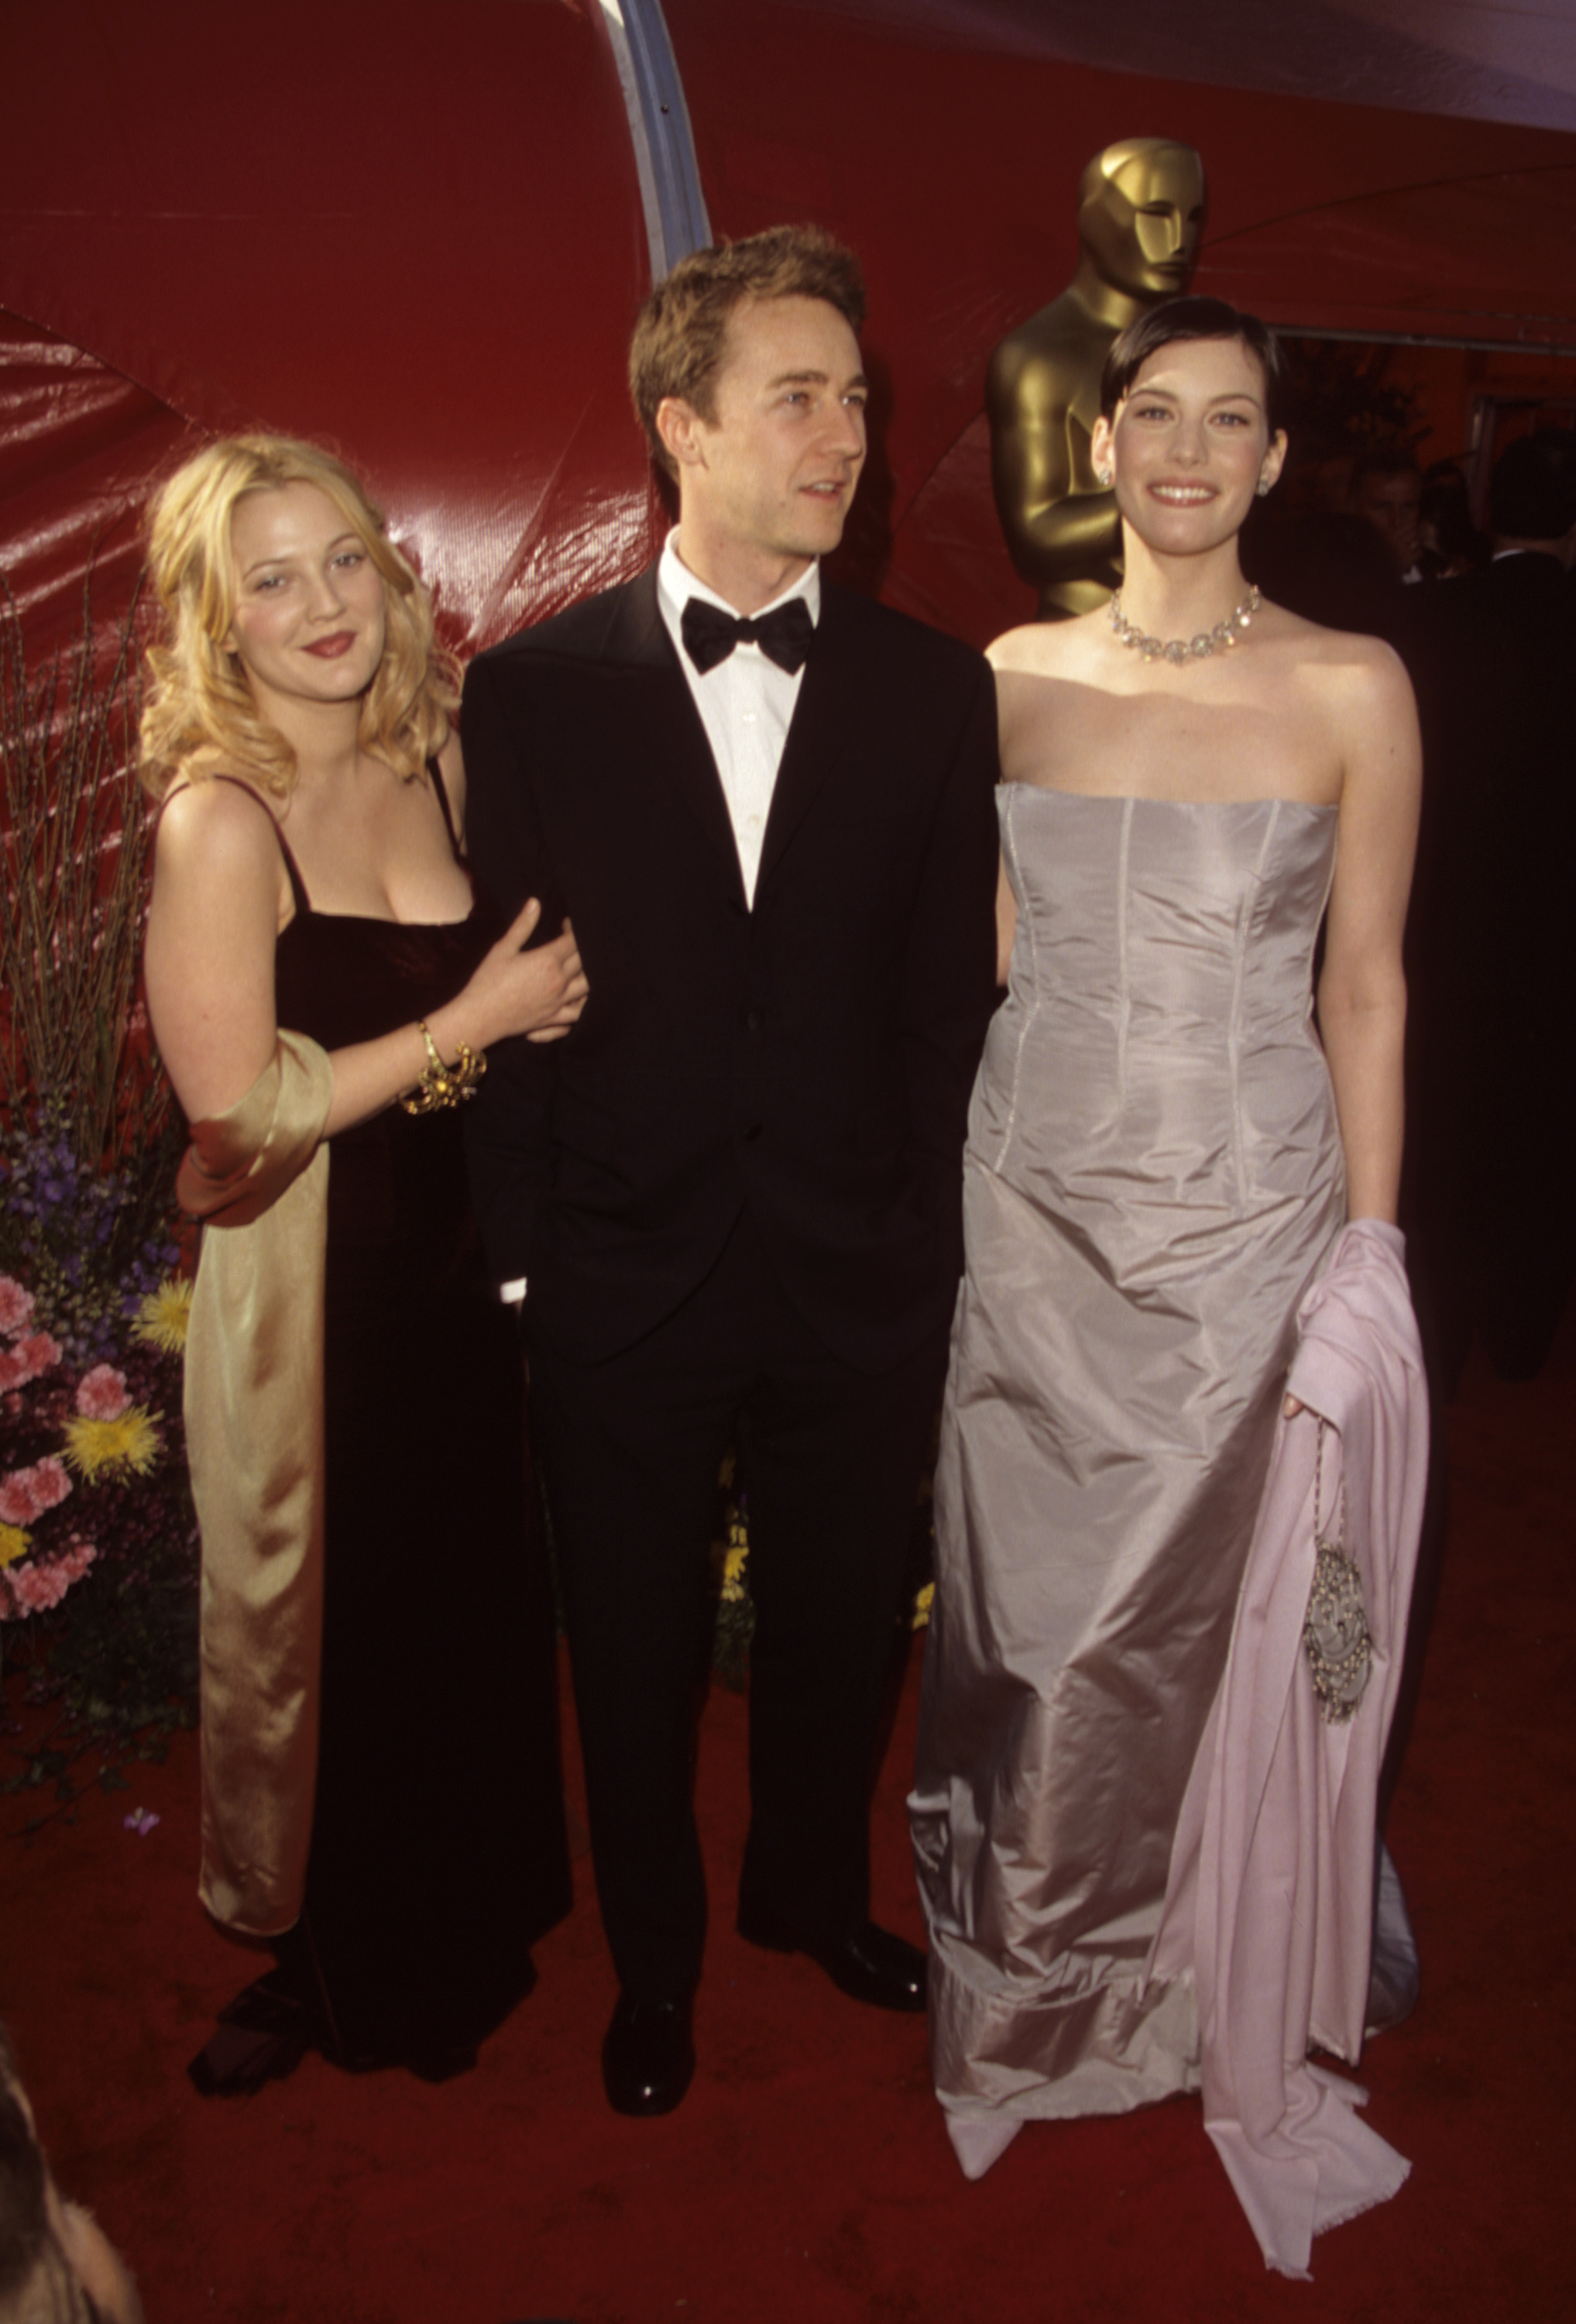 Drew Barrymore And Liv Tyler 1999 This Is What The